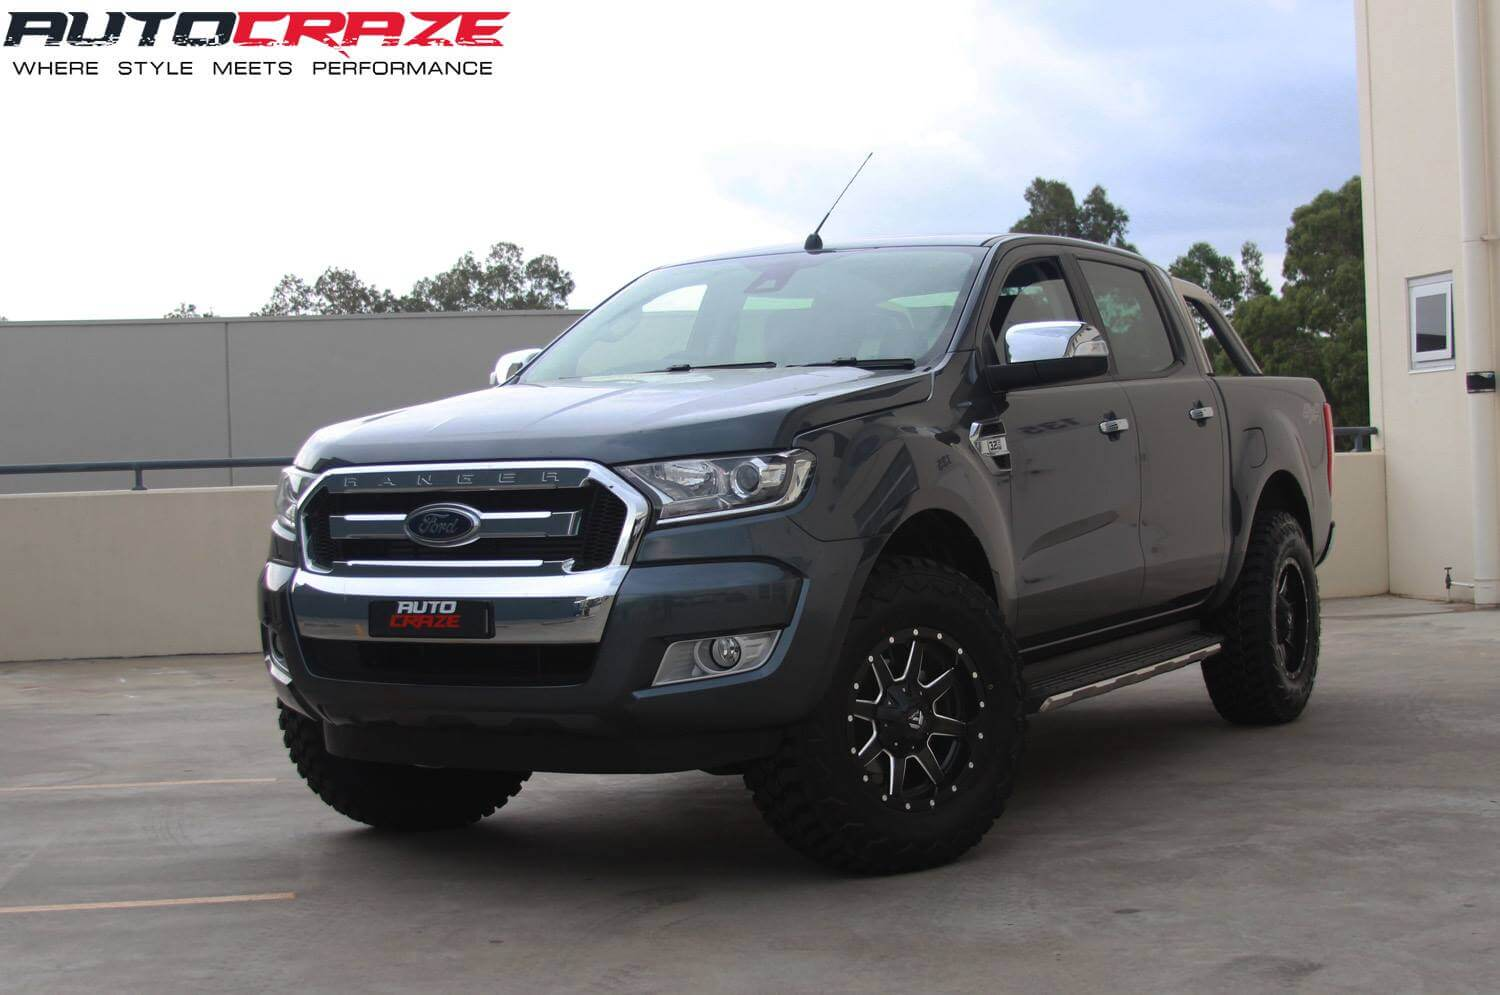 Ford Ranger Wheels : Ford ranger mag wheels aftermarket rims and